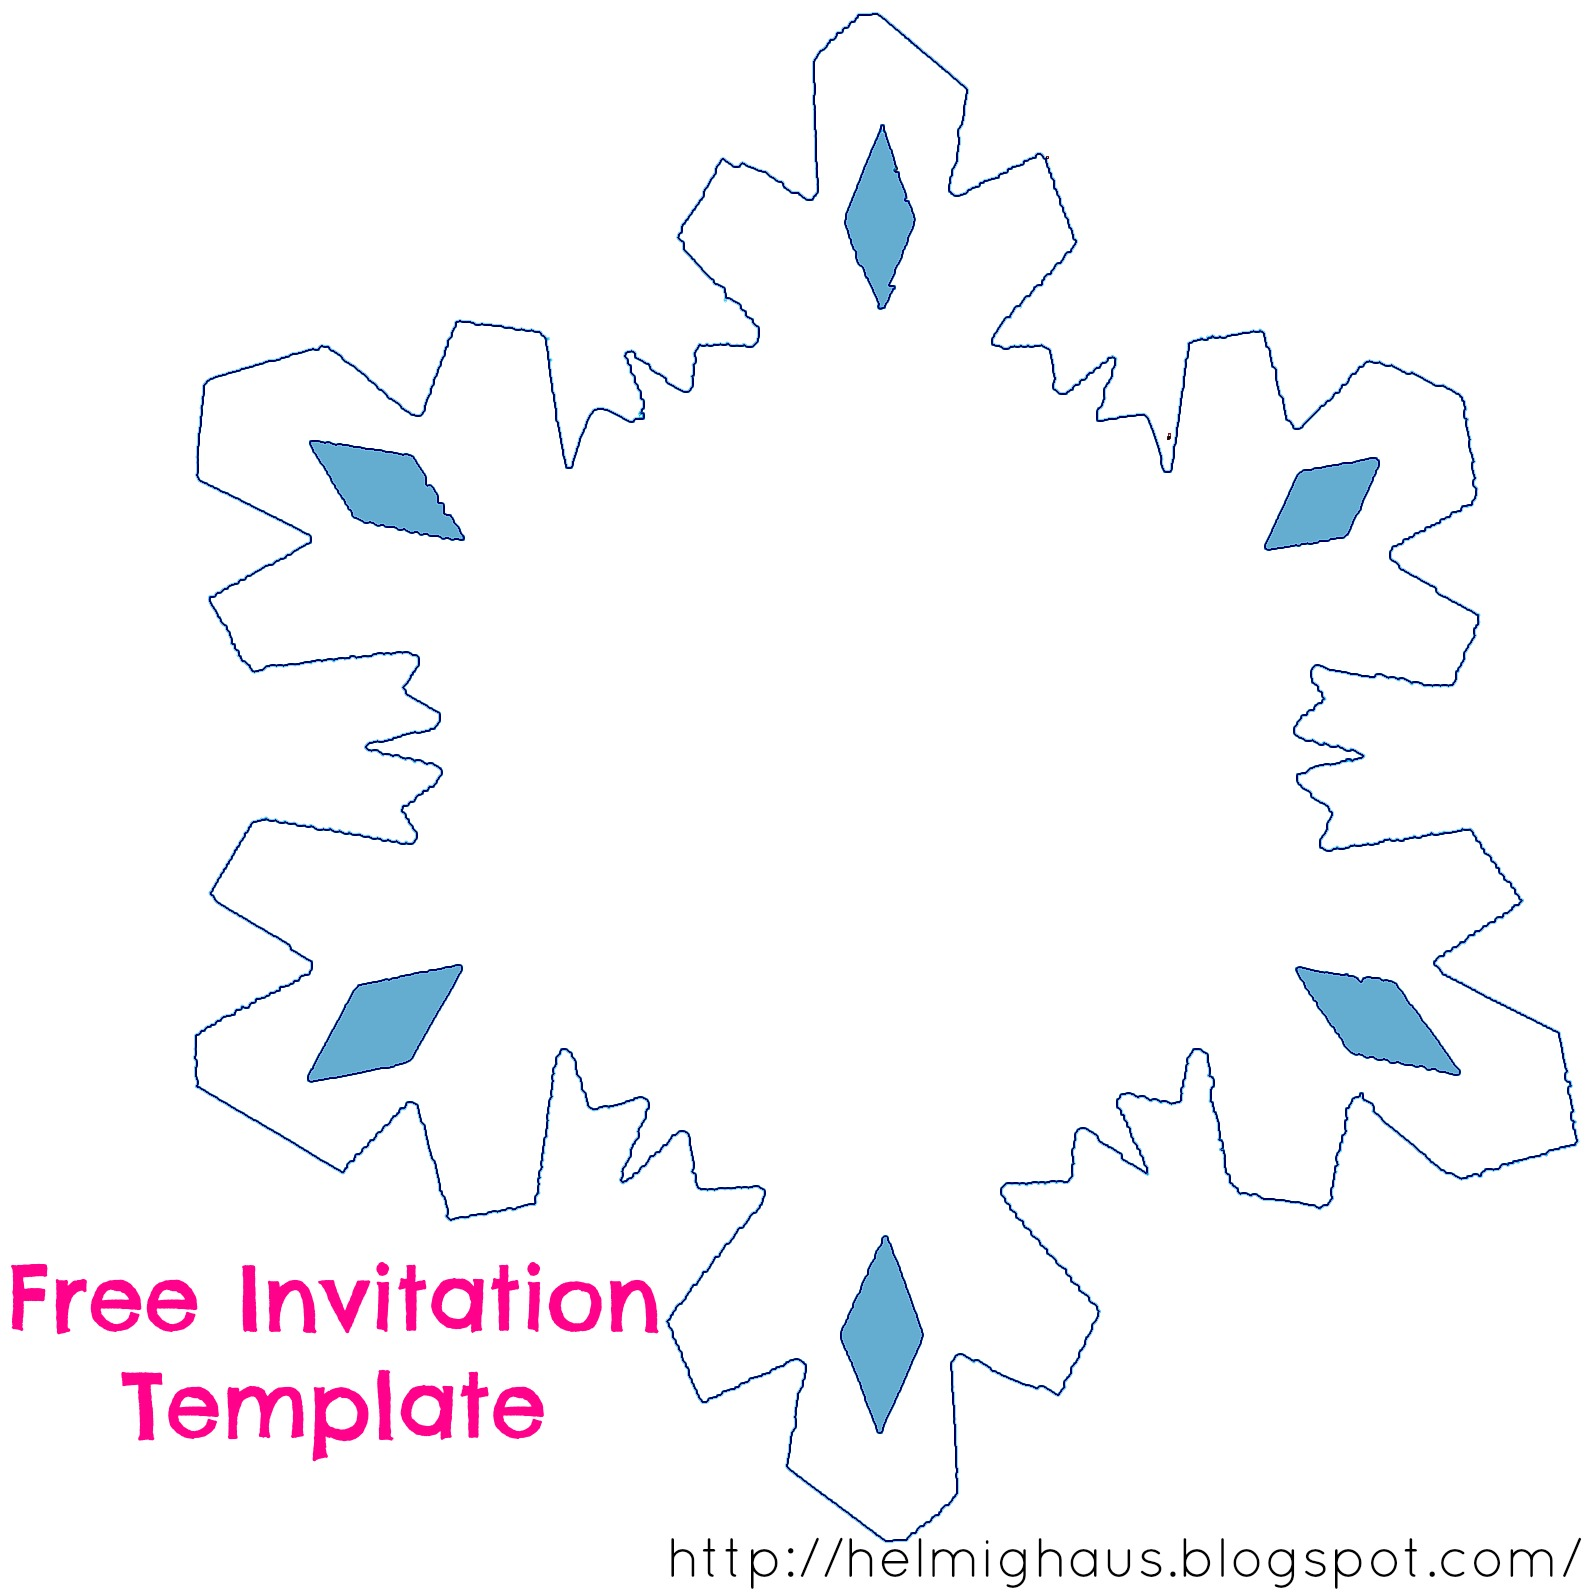 Helmighaus november 2014 blank snowflake template for invitations planning a quinceaera party creating the save the date solutioingenieria